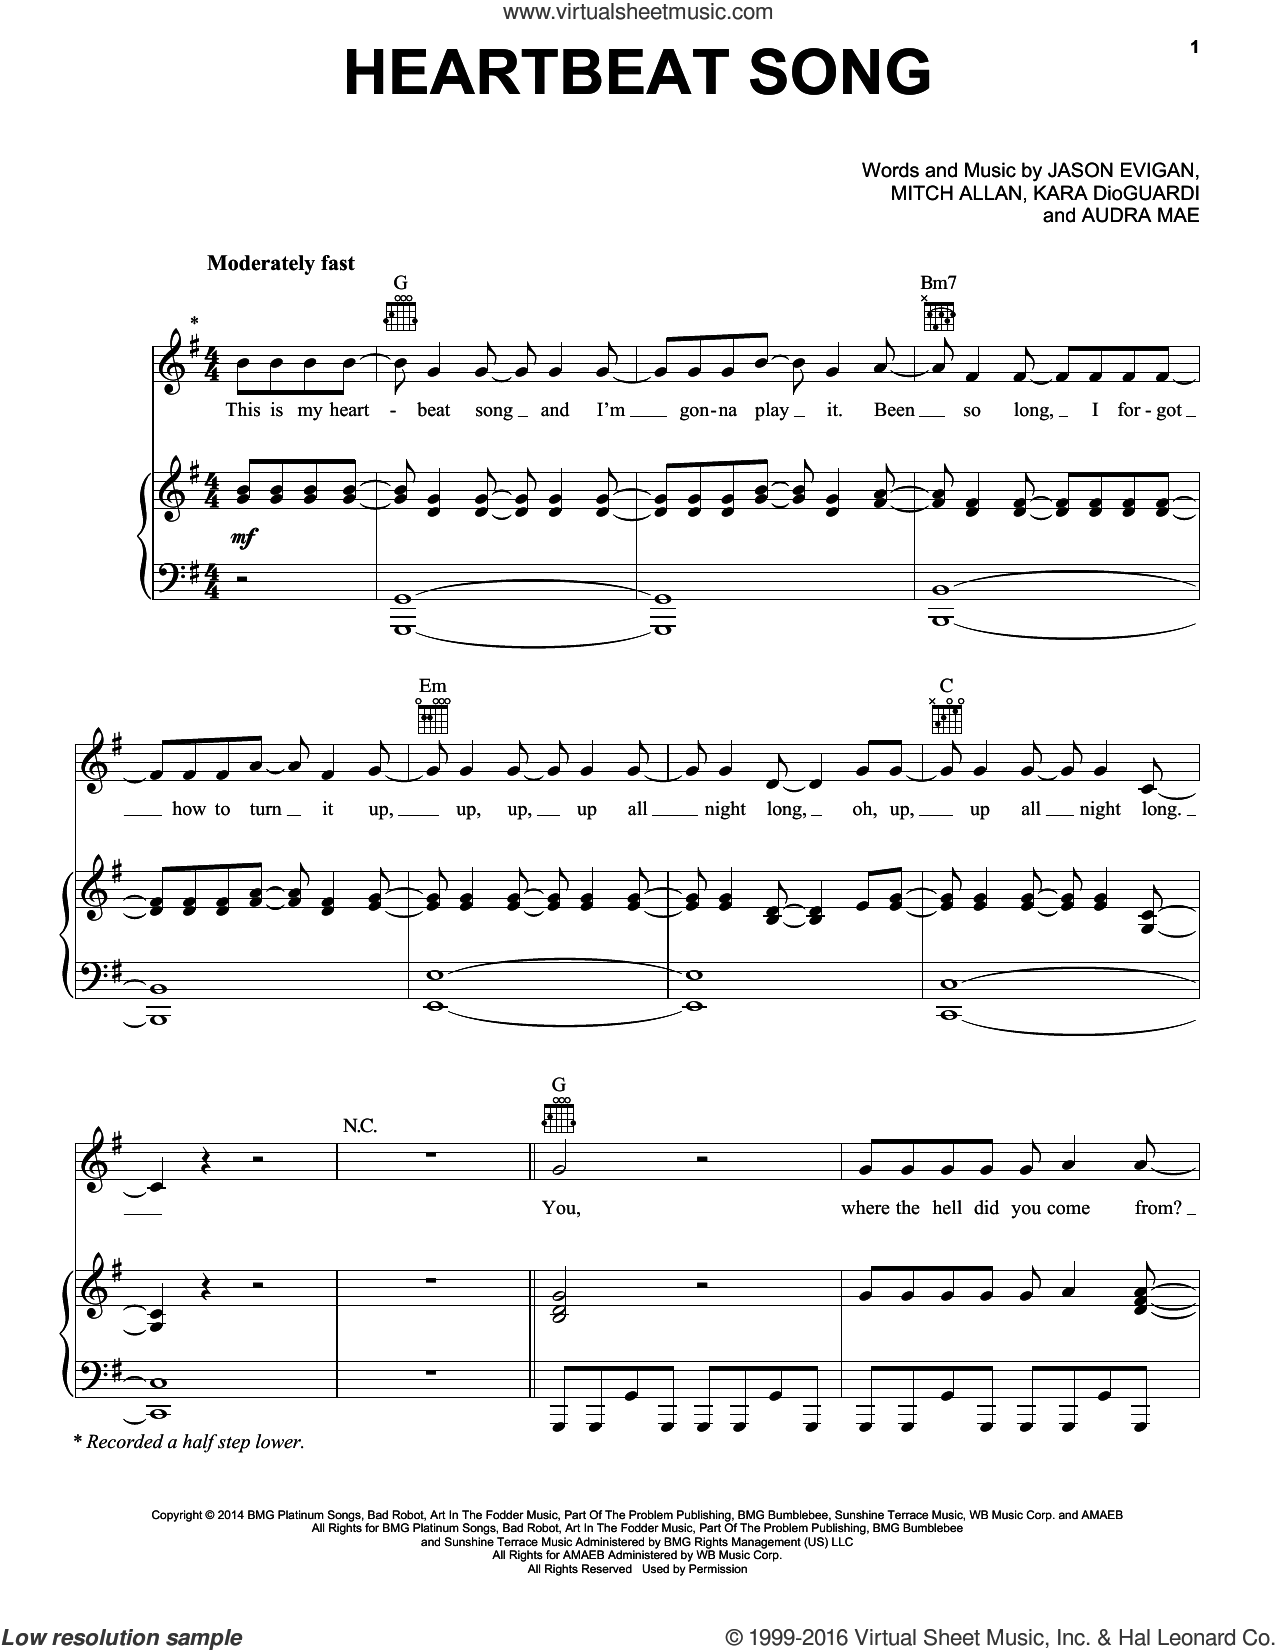 Heartbeat Song sheet music for voice, piano or guitar by Mitch Allan, Audra Mae, Jason Evigan, Kara DioGuardi and Kelly Clarkson. Score Image Preview.